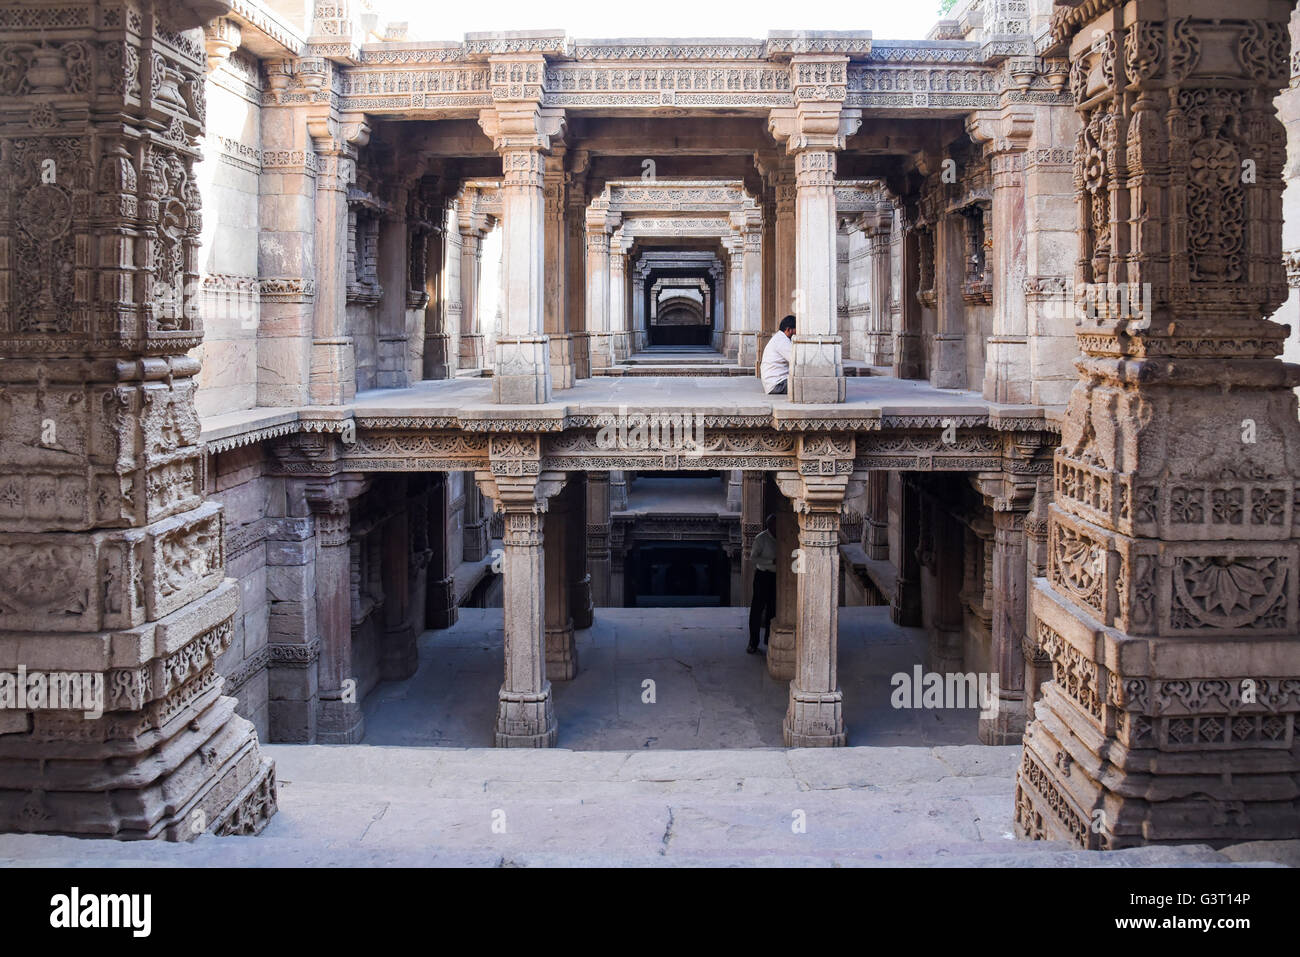 Beautiful carvings on the walls of Adalaj step well in Ahmedabad, India - Stock Image